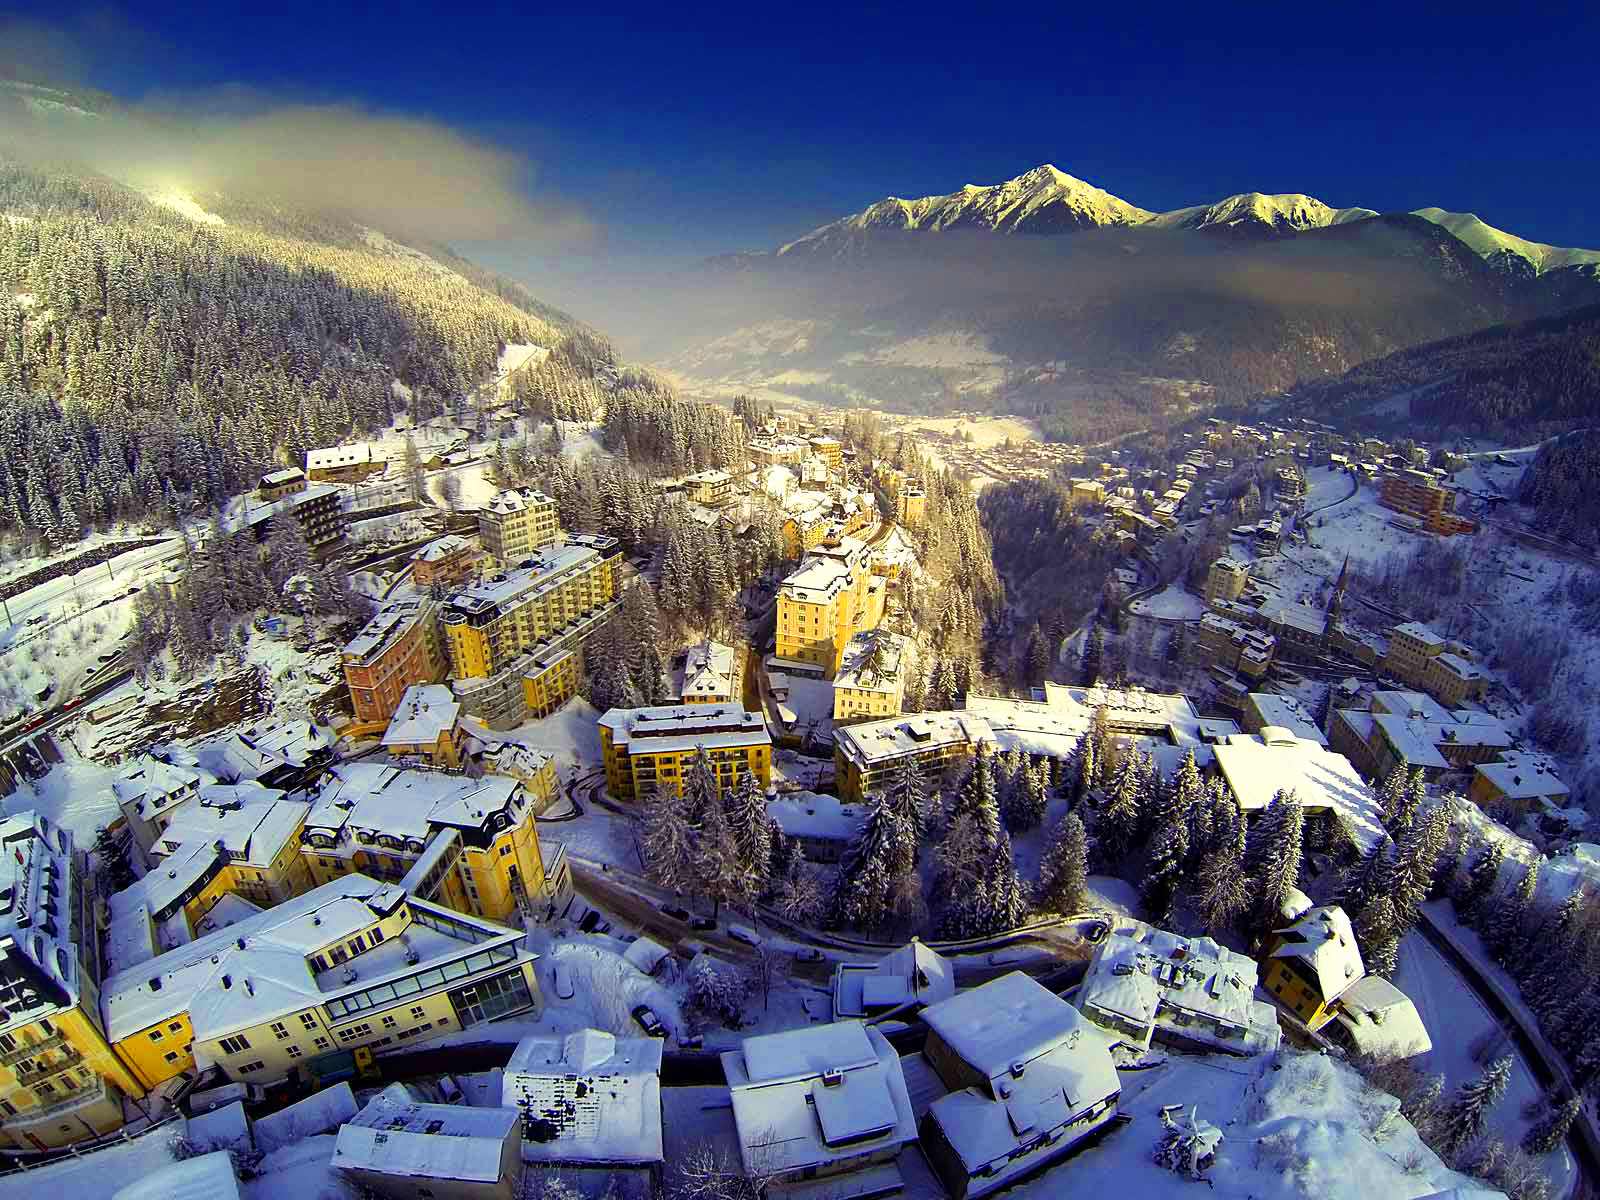 Photos Of Snow Holidays In Bad Gastein In The Austrian Alps